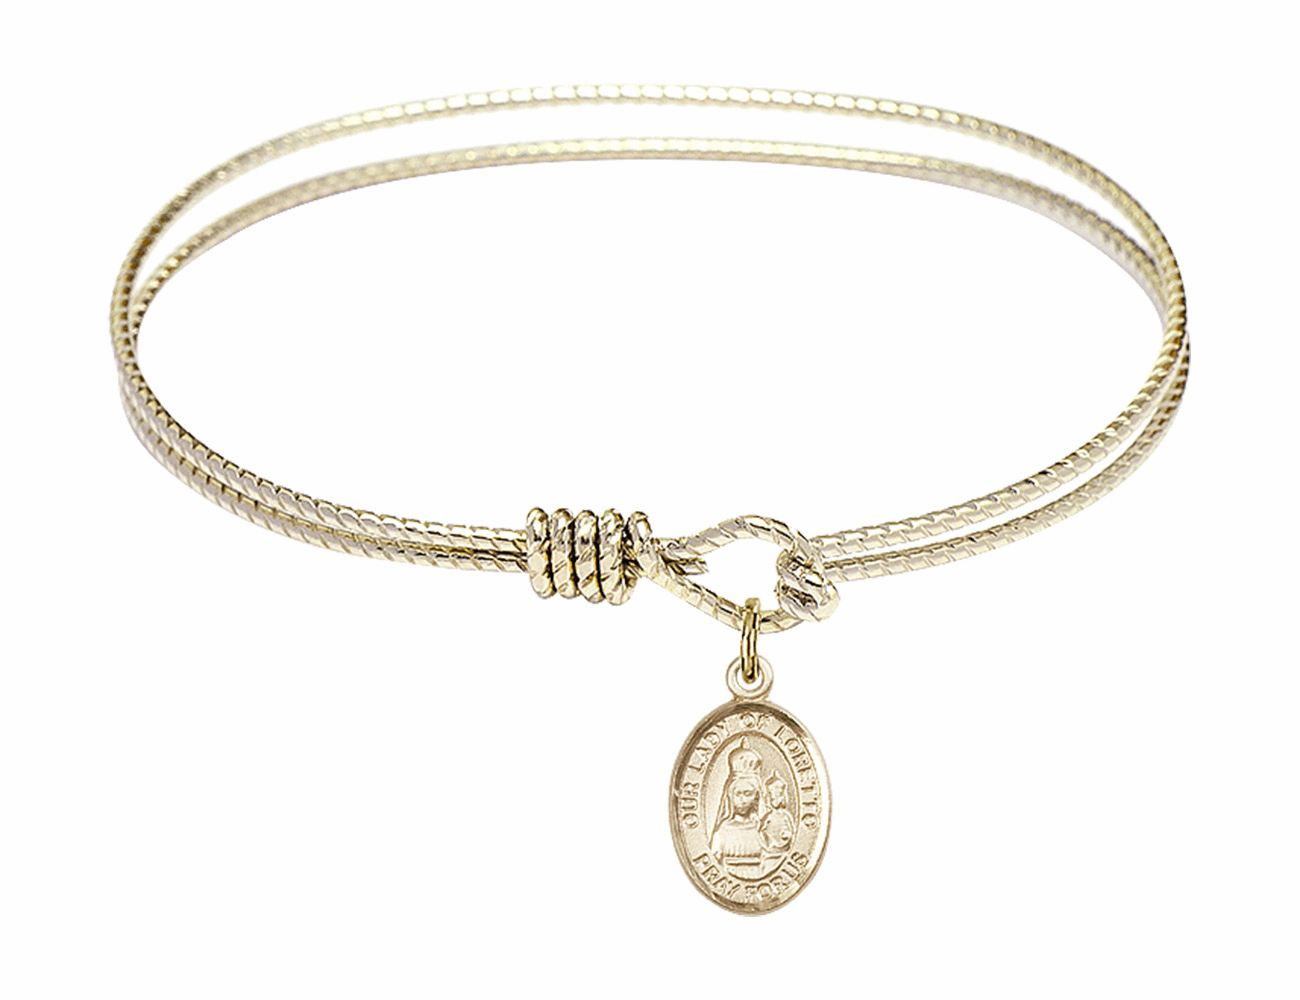 Twisted Our Lady of Loretto Bangle Gold-filled Charm Bracelet